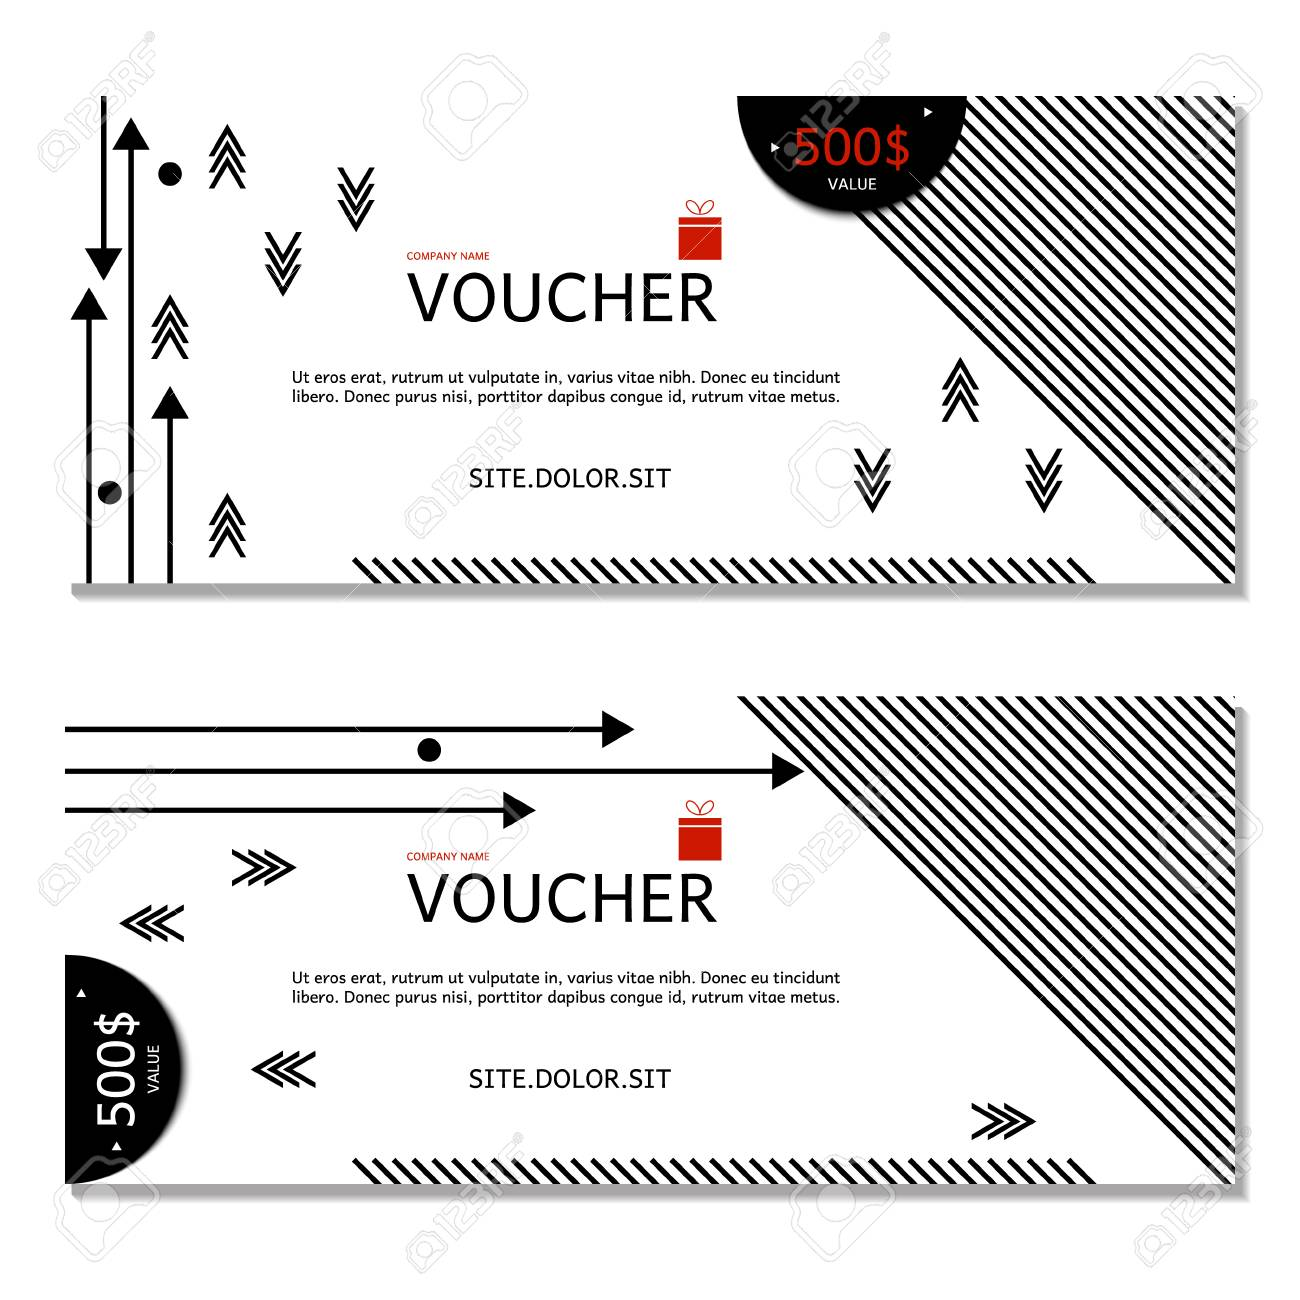 Gift Voucher Vector Illustration Coupon And Voucher Template